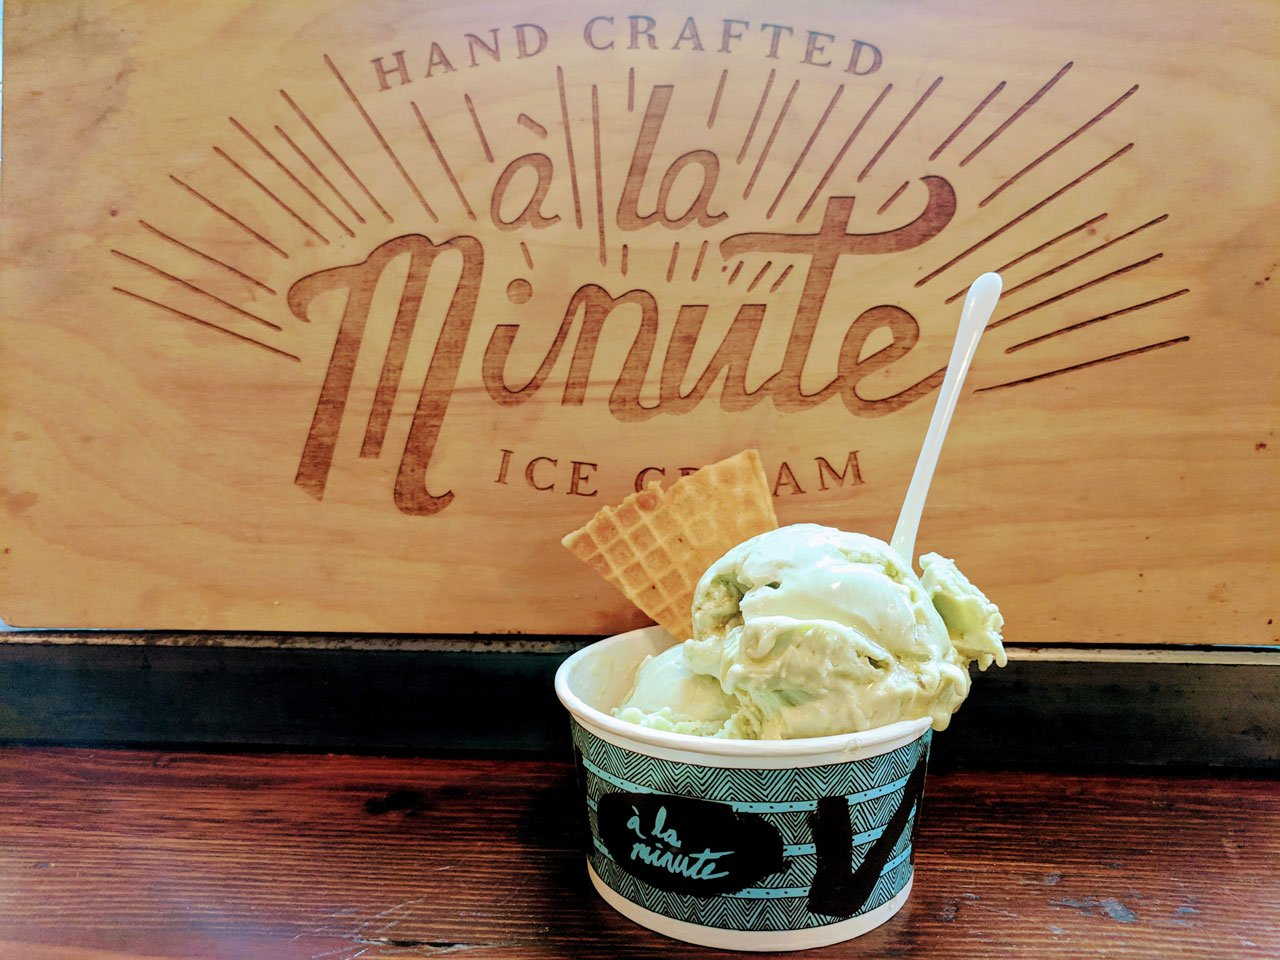 Avocado Ice Cream at a la Minute in Orange, Ca